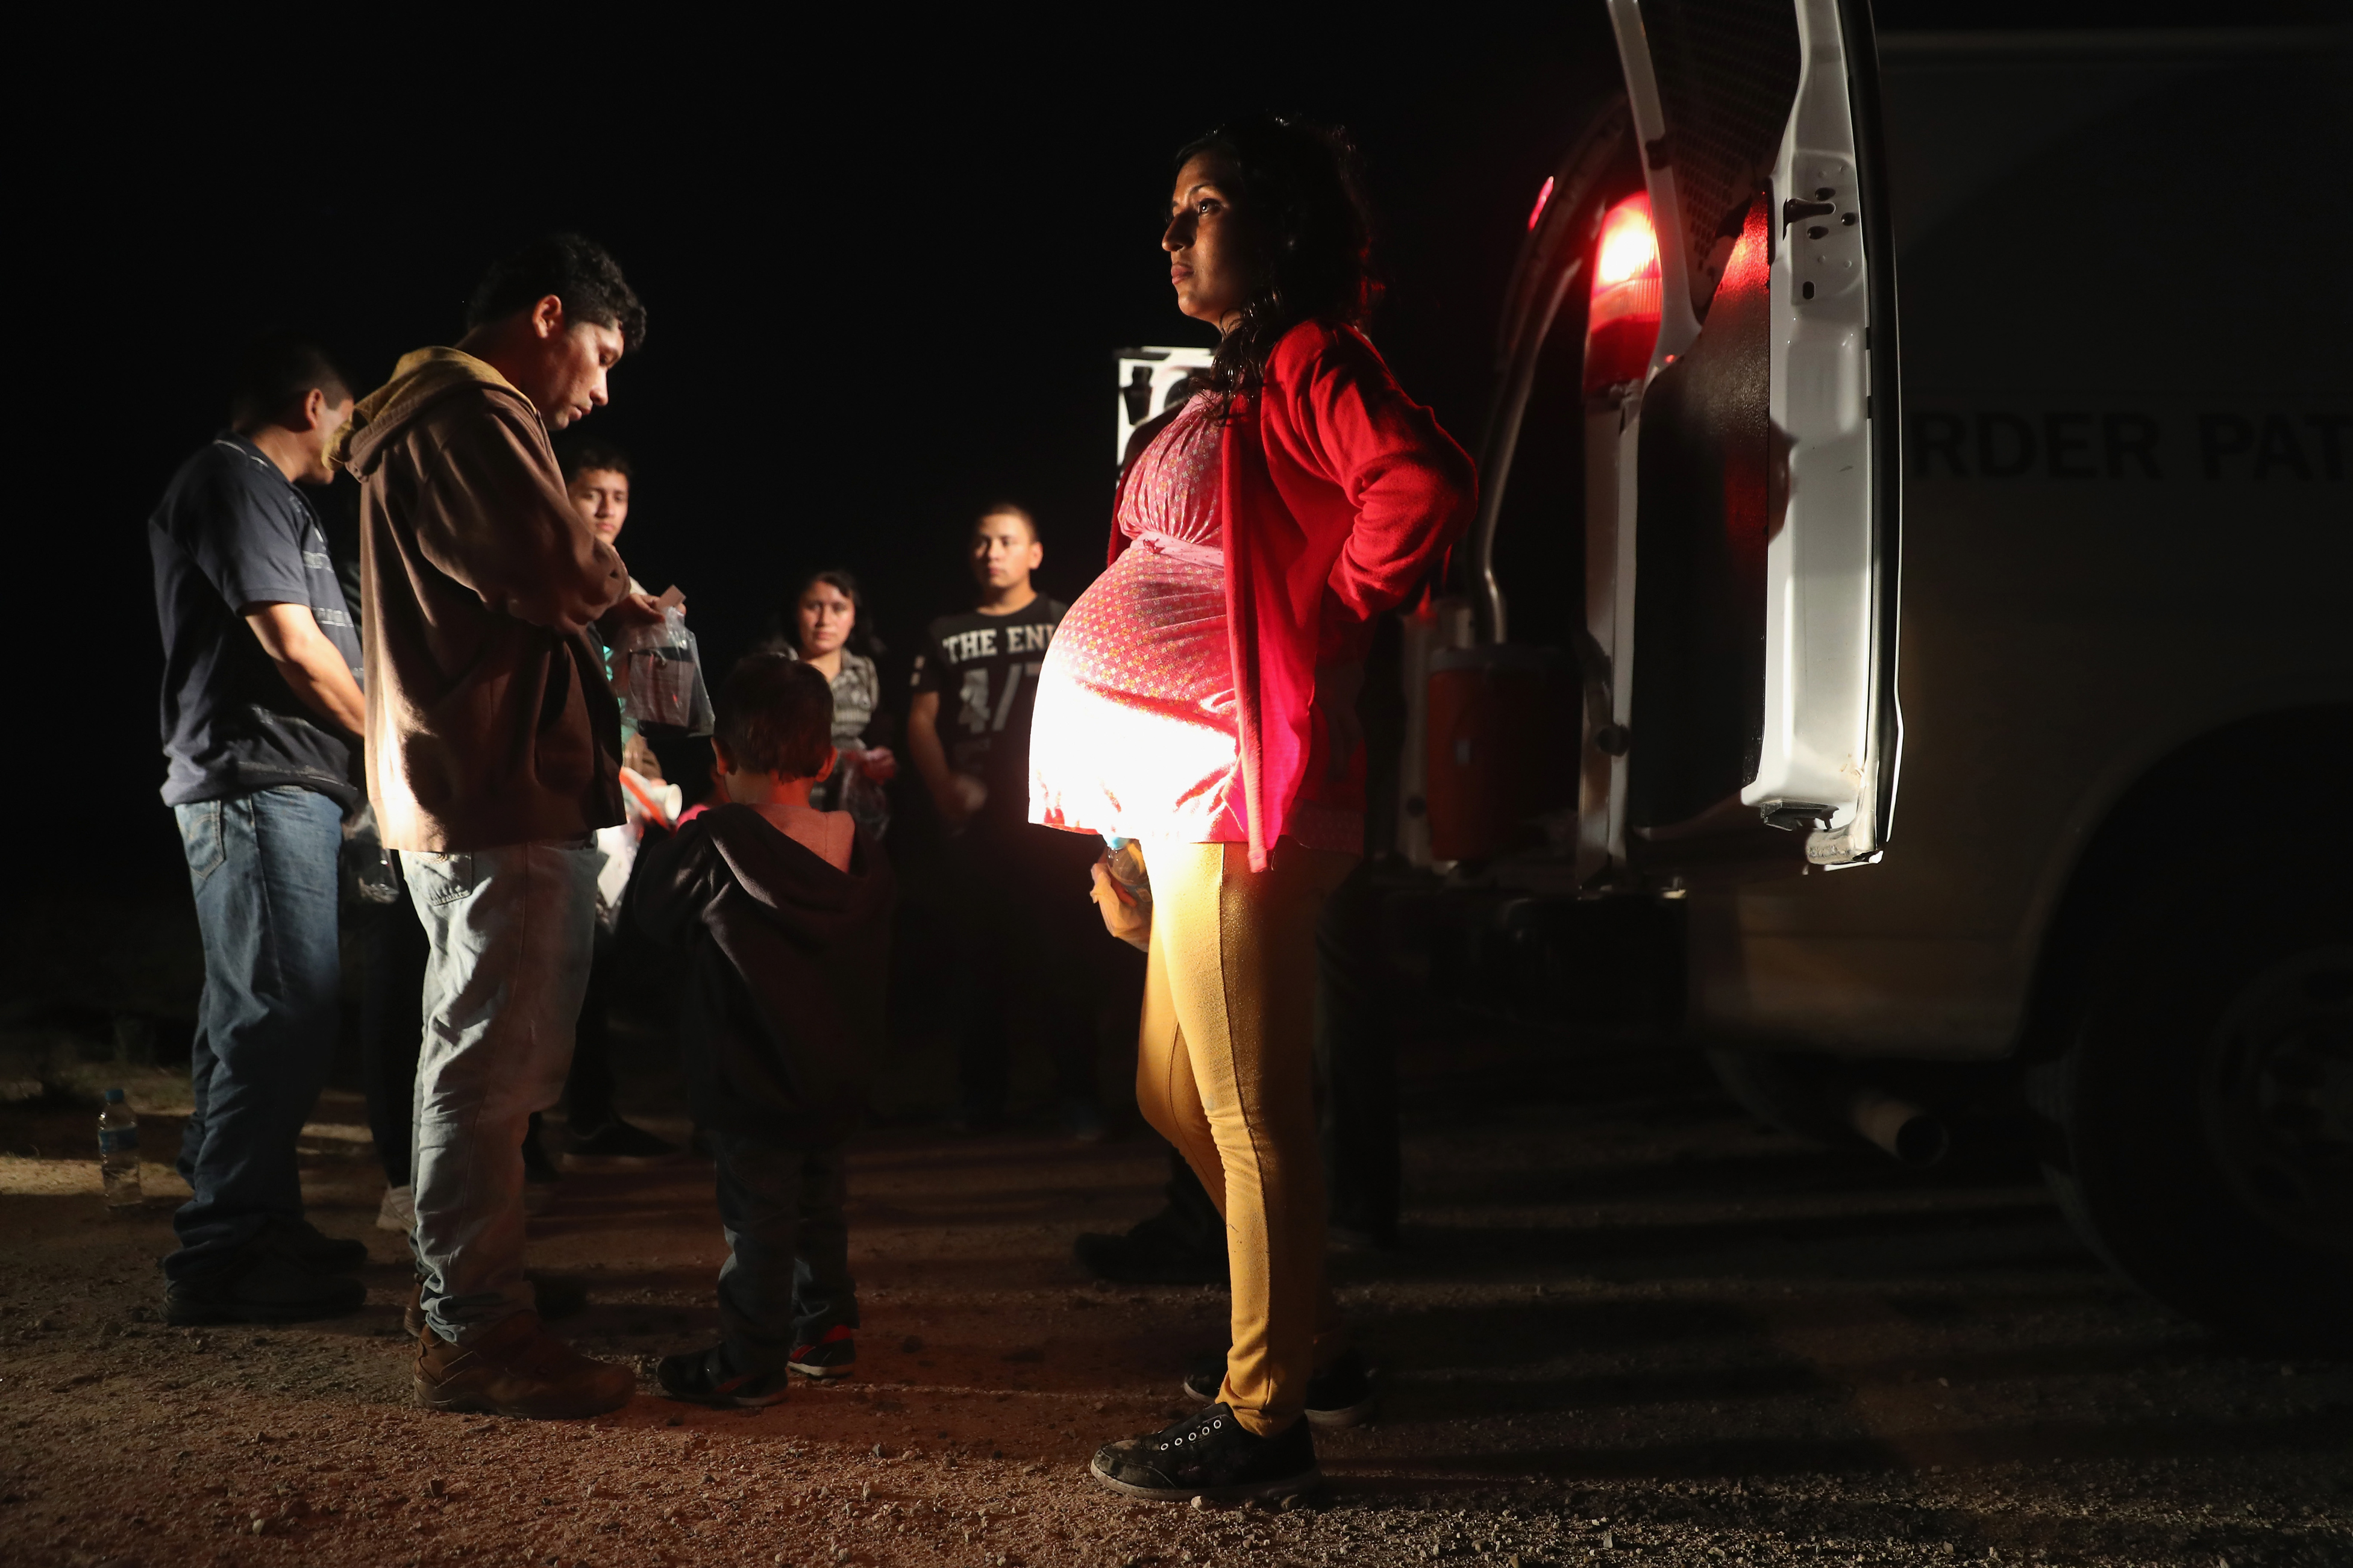 Immigrants from Central America wait to be taken into custody by U.S. Border Patrol agents in Roma, Texas on August 17, 2016.